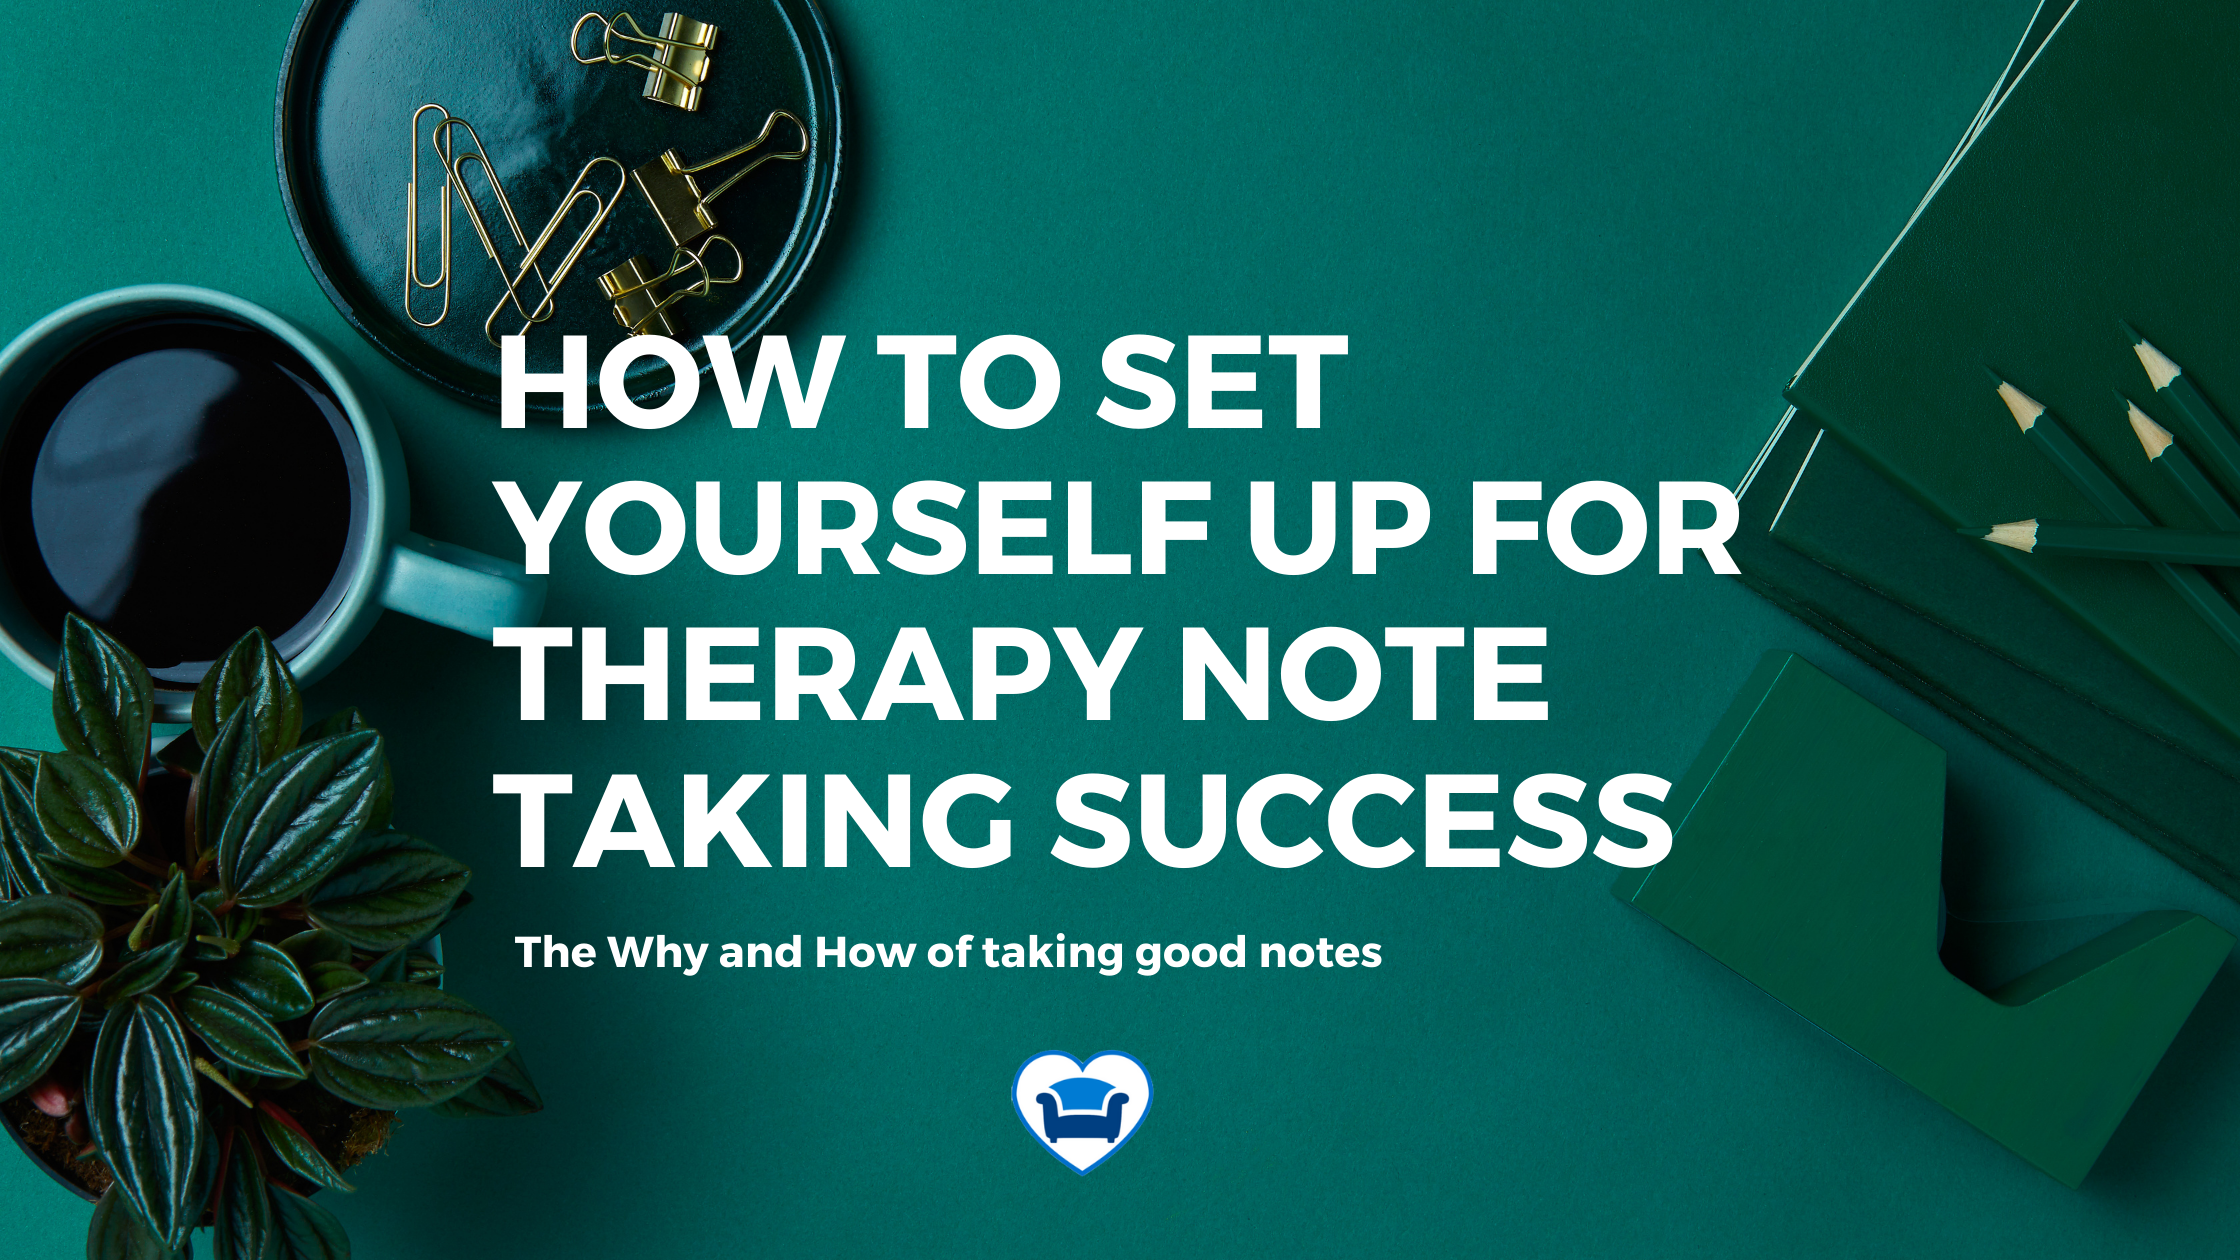 Set yourself up for note taking success